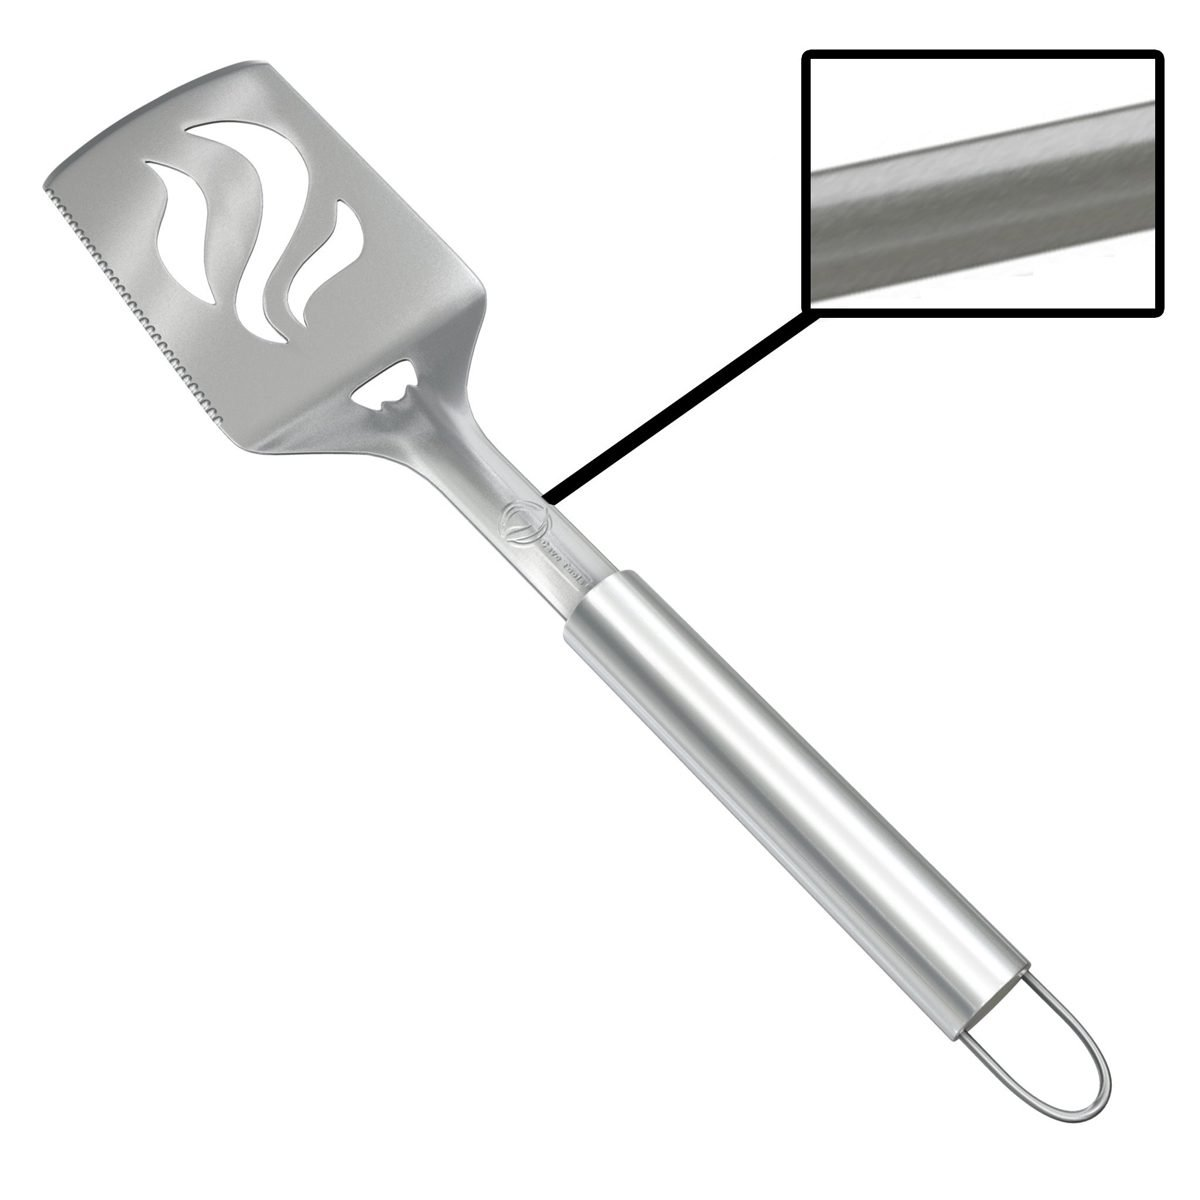 Spatula with Bottle Opener